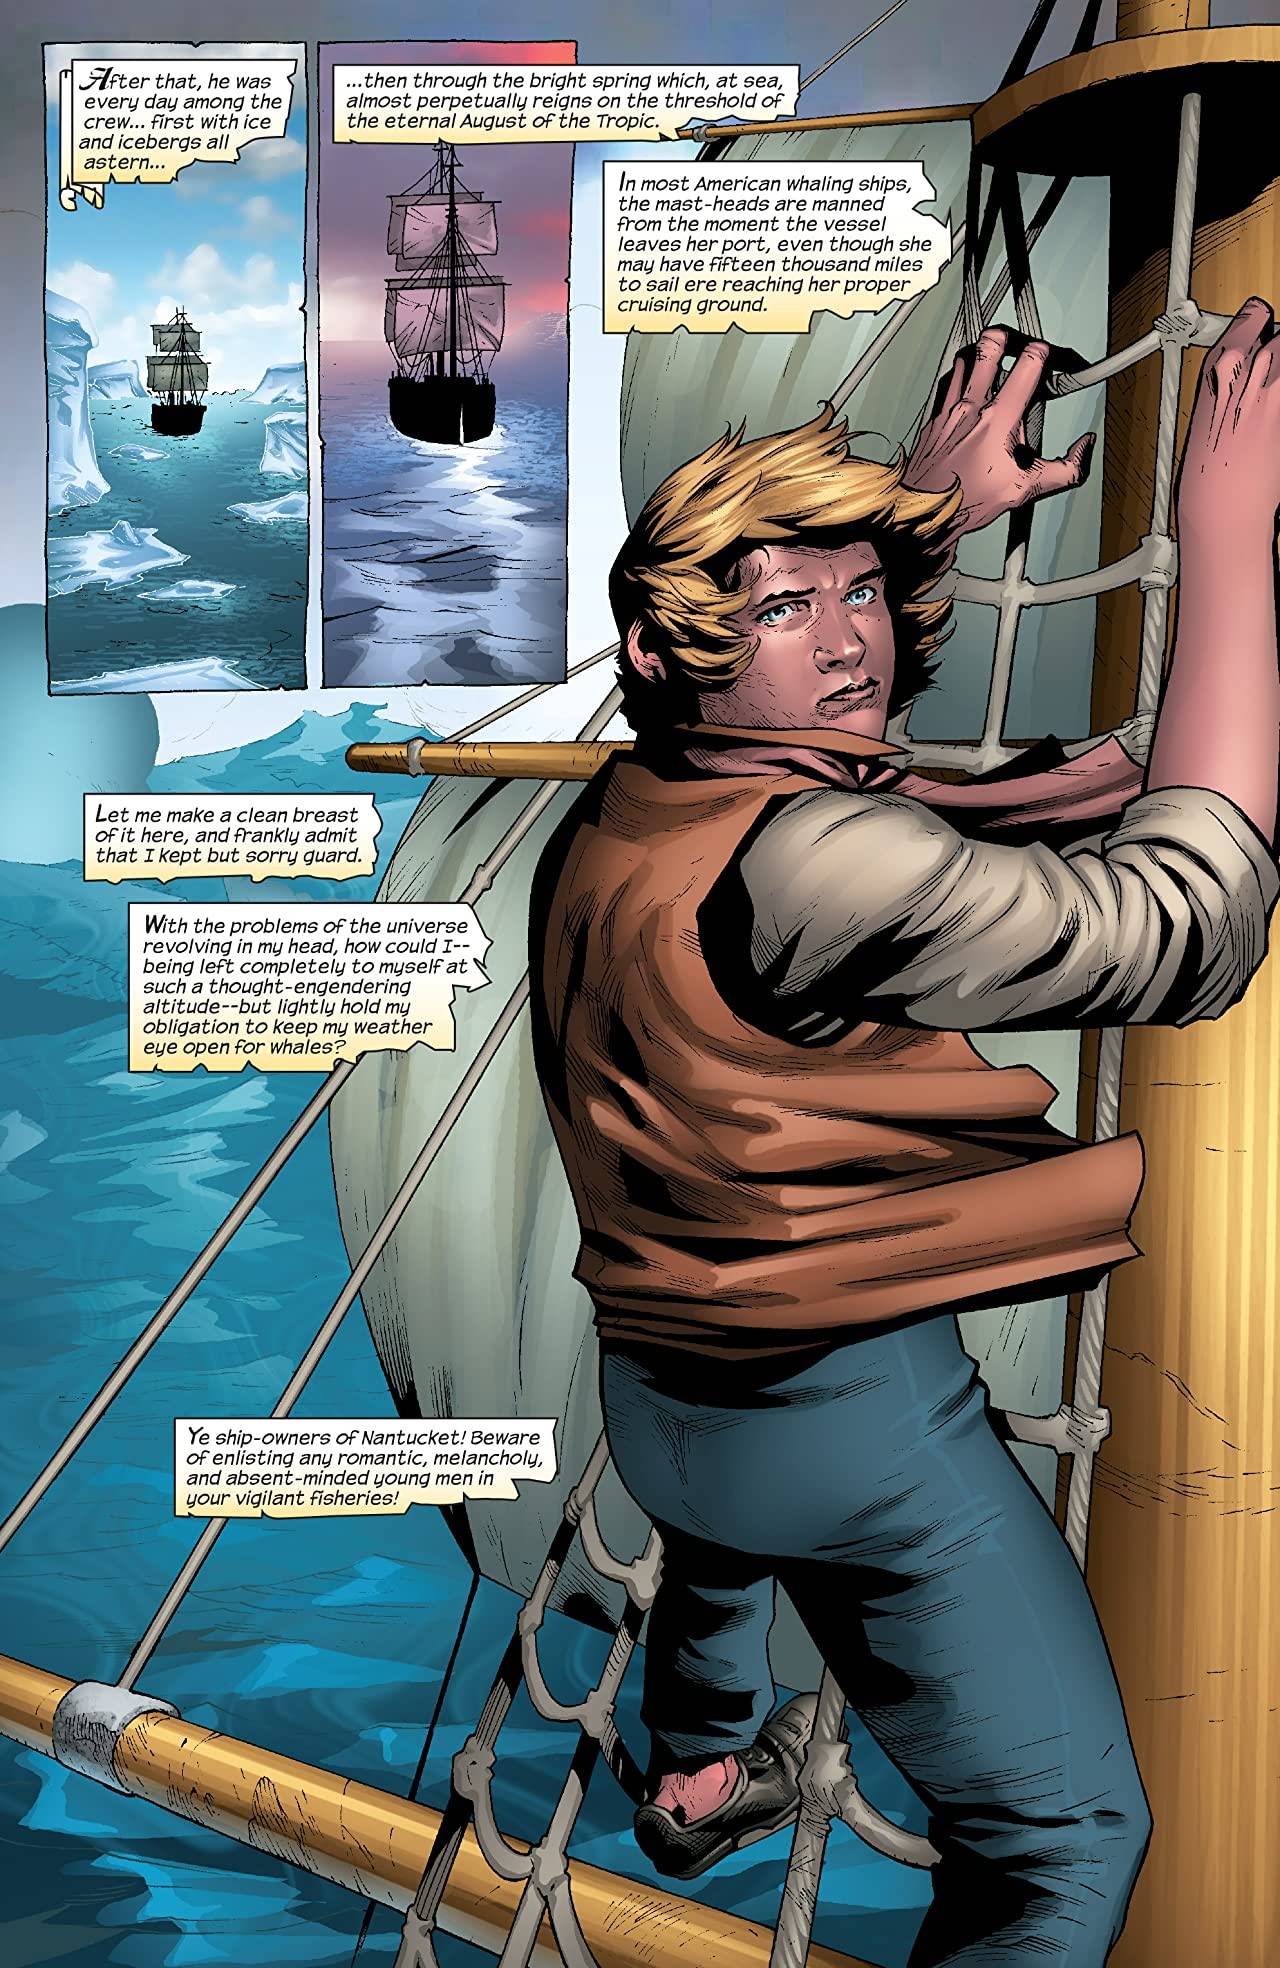 Marvel Illustrated: Moby Dick (2008) #2 (of 6)